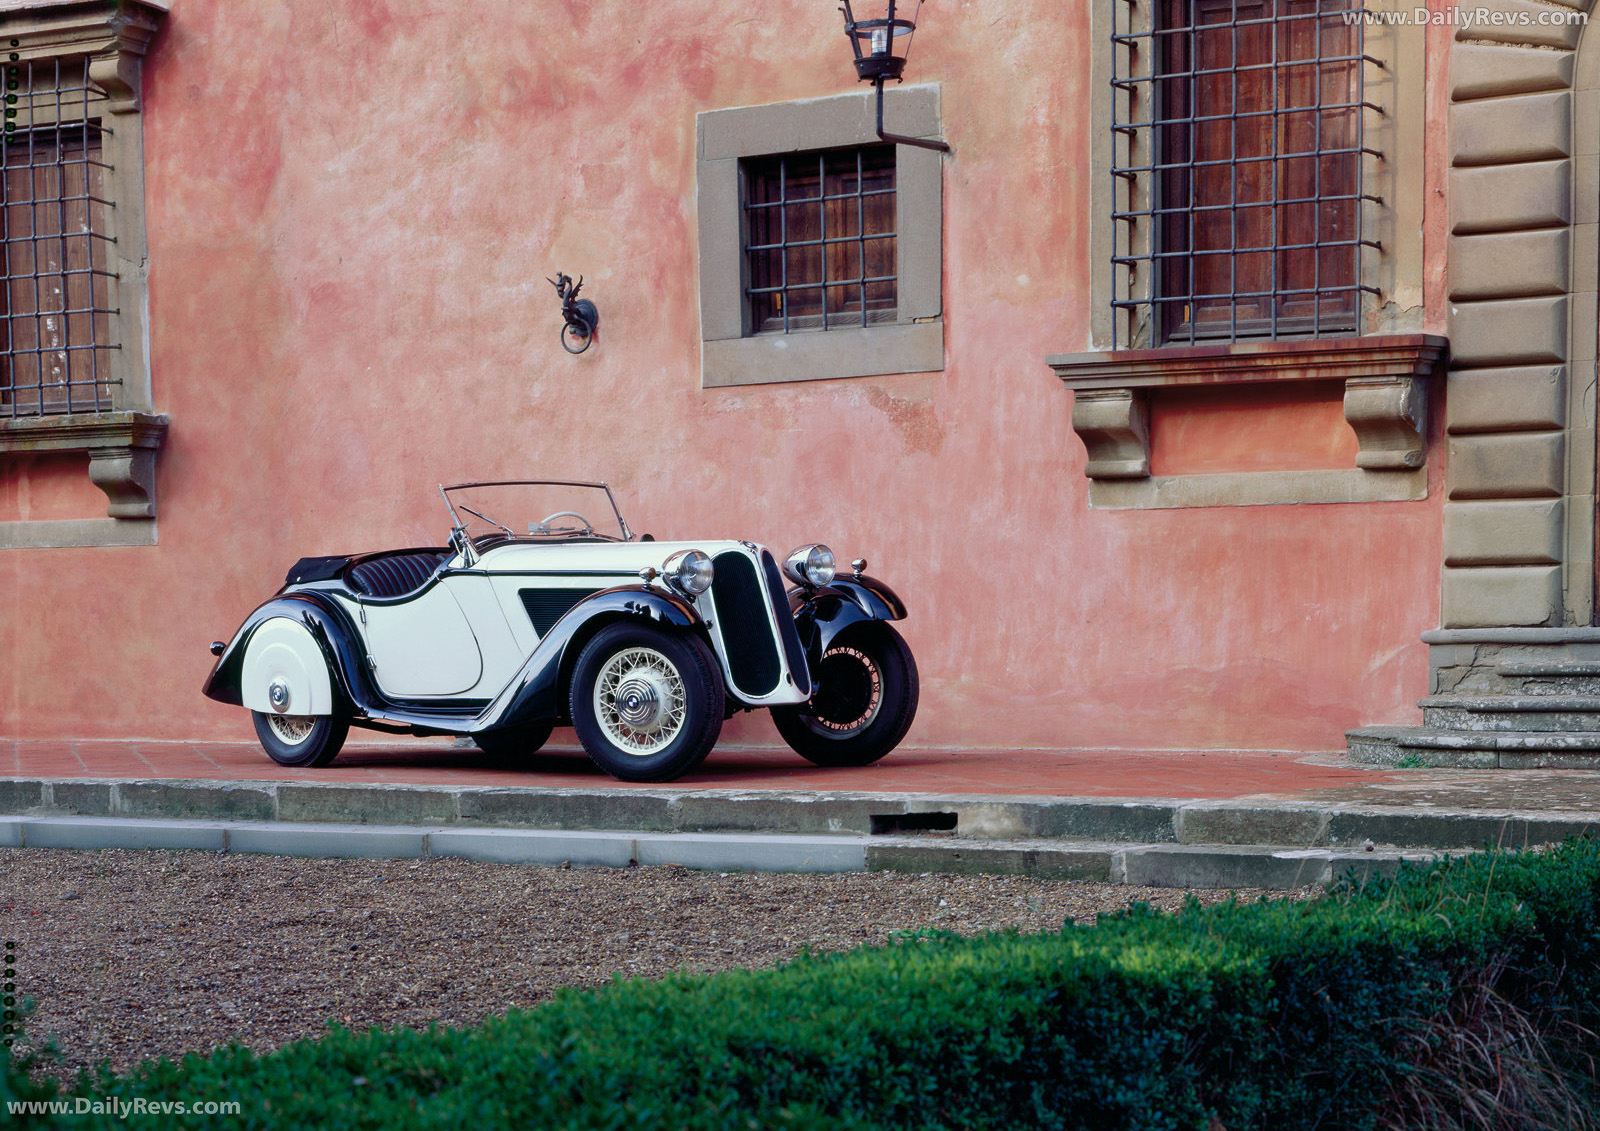 1935 BMW 315-1 Roadster - Dailyrevs